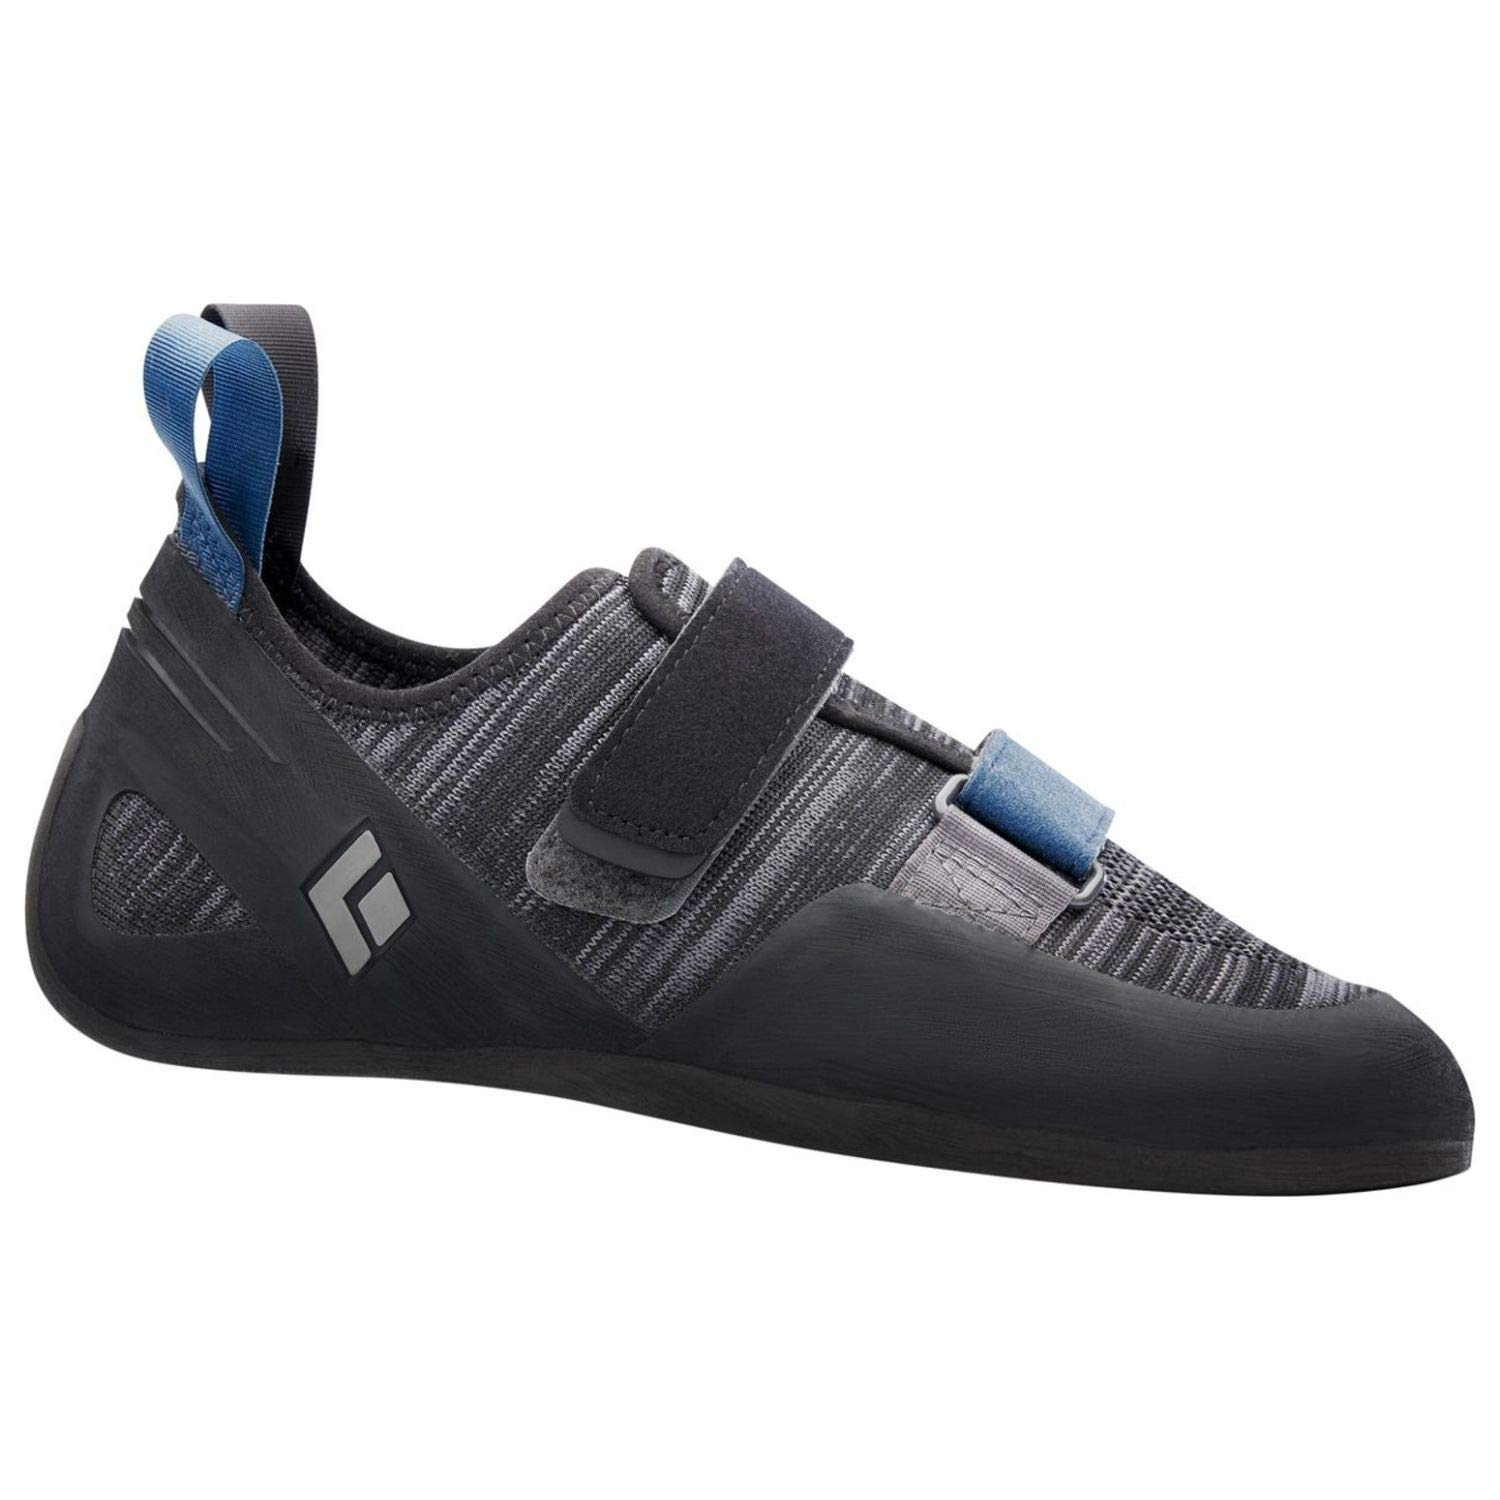 Black Diamond Momentum Climbing Shoe - Men's Ash 11